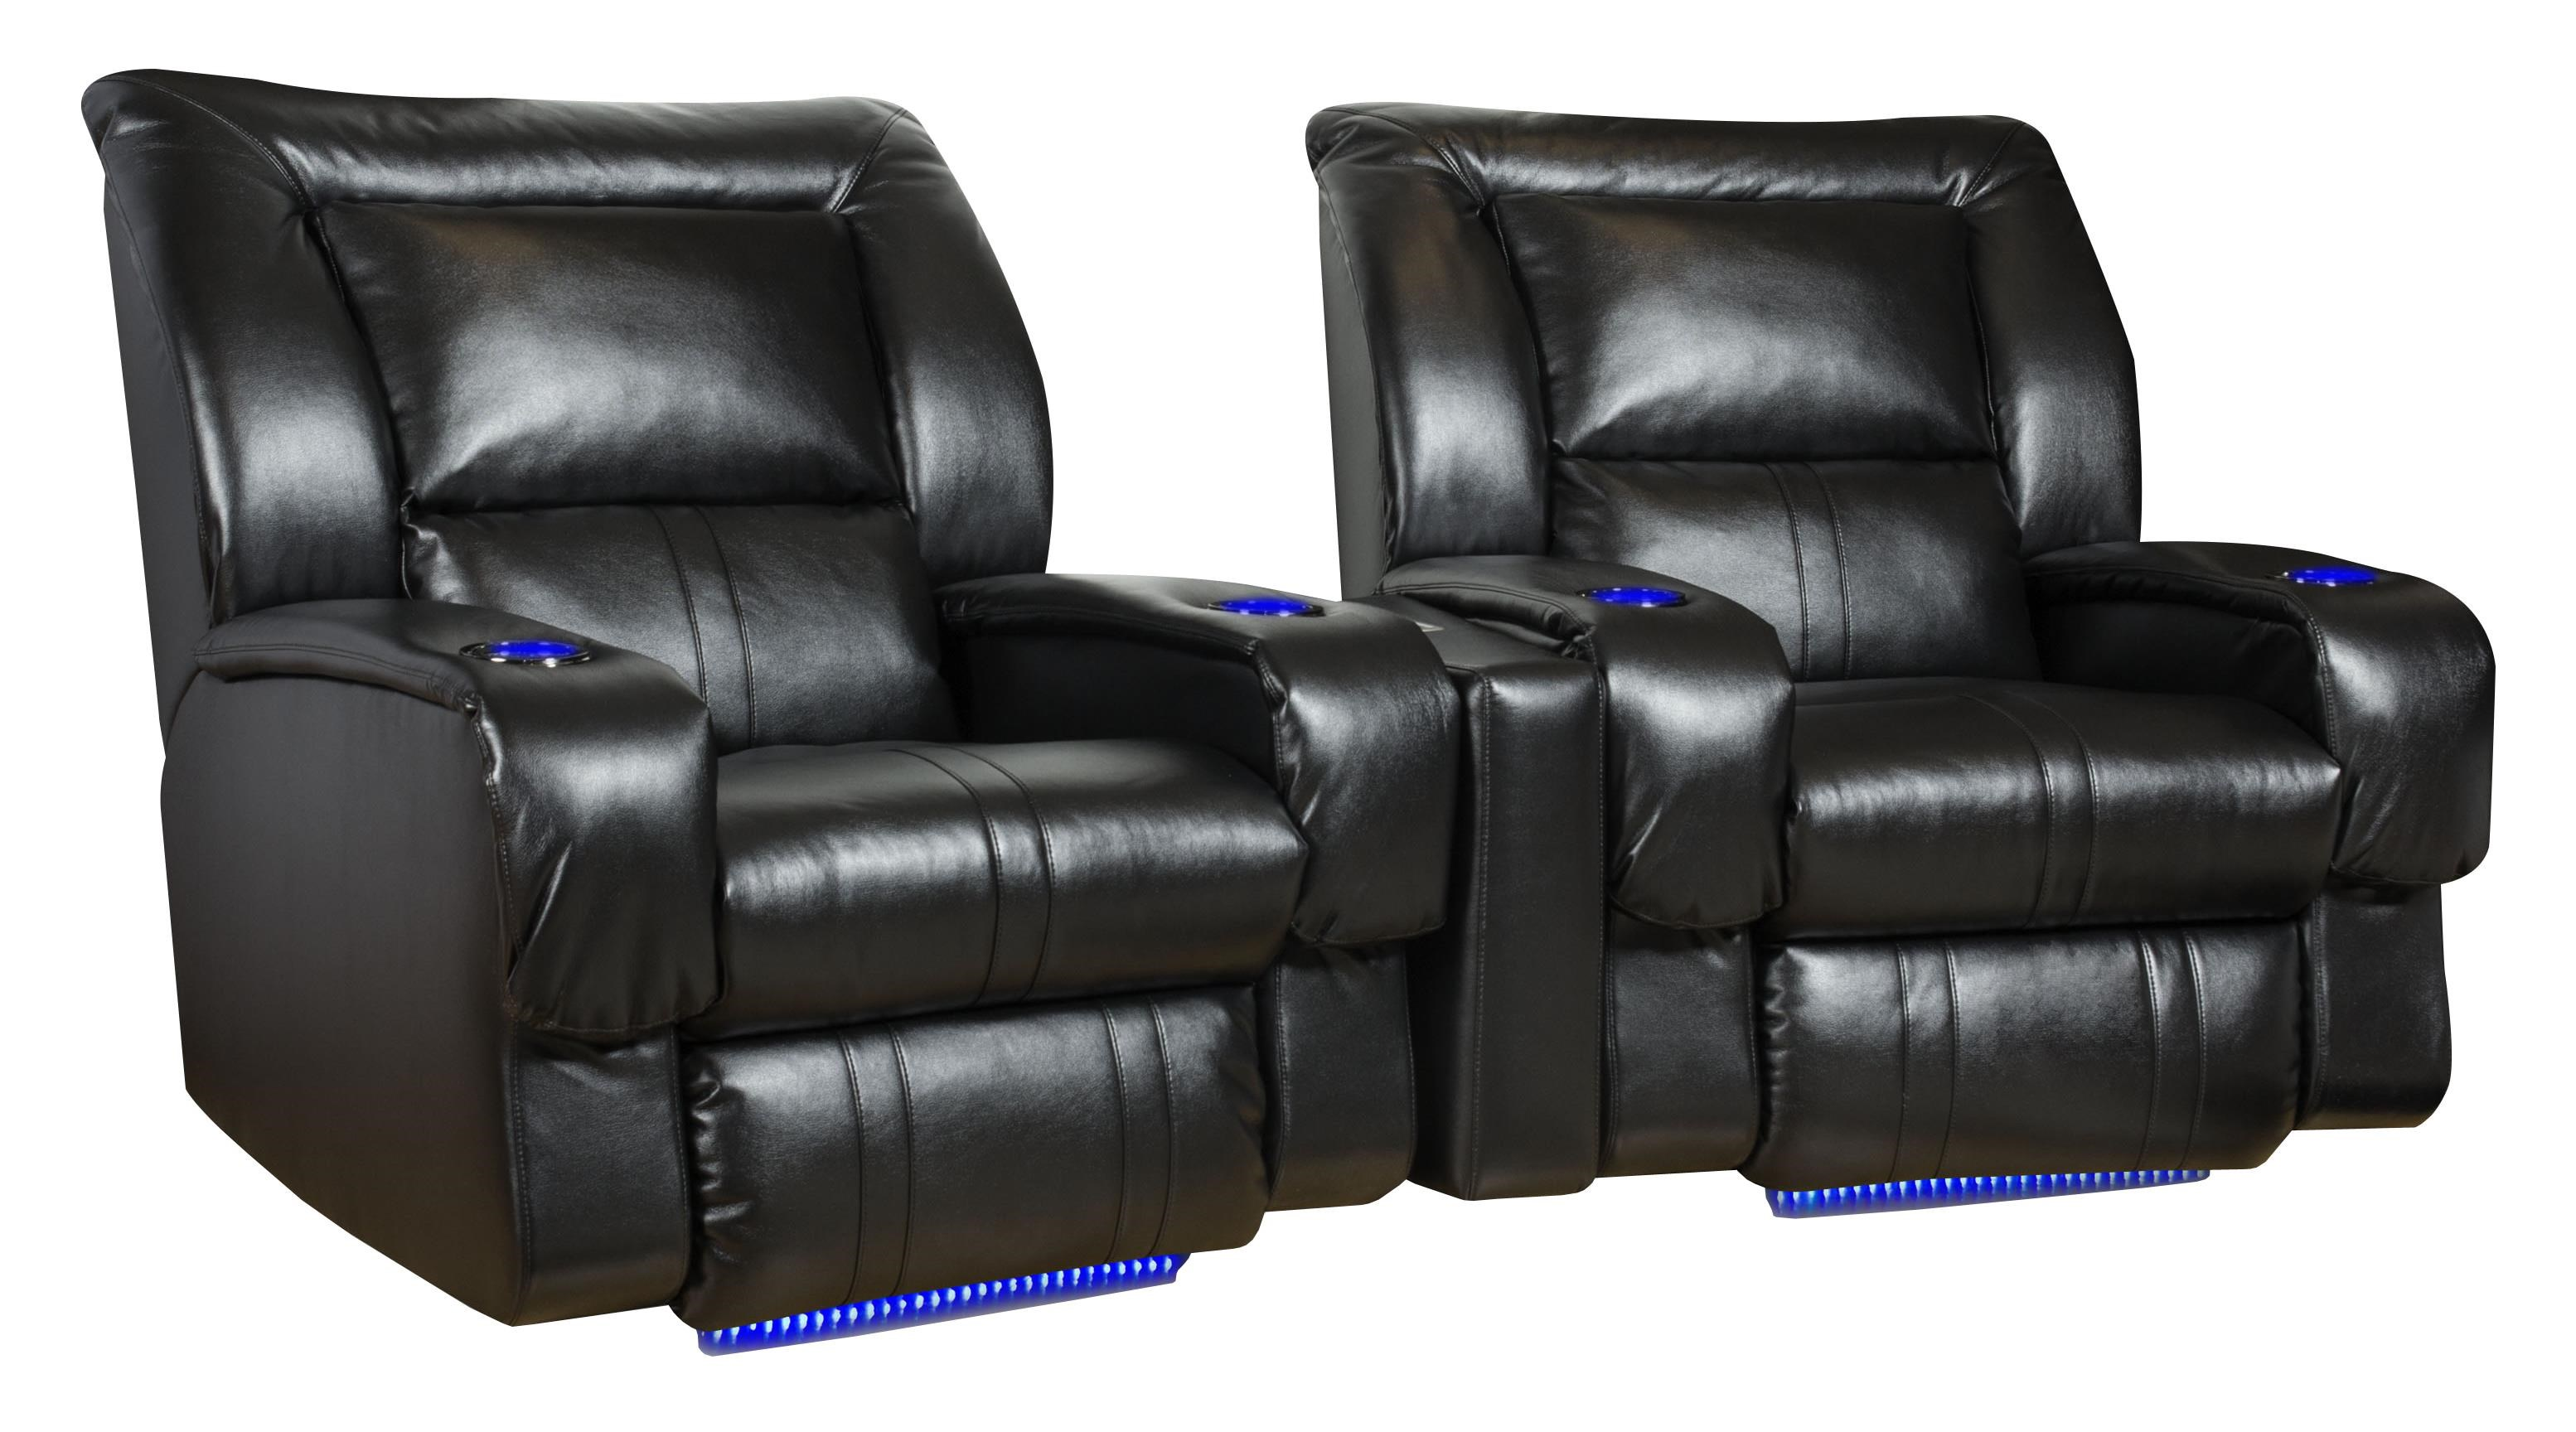 Design To Recline Roxie Theater Seating Arrangement (Wall Hugger) With 2  Seats, LED